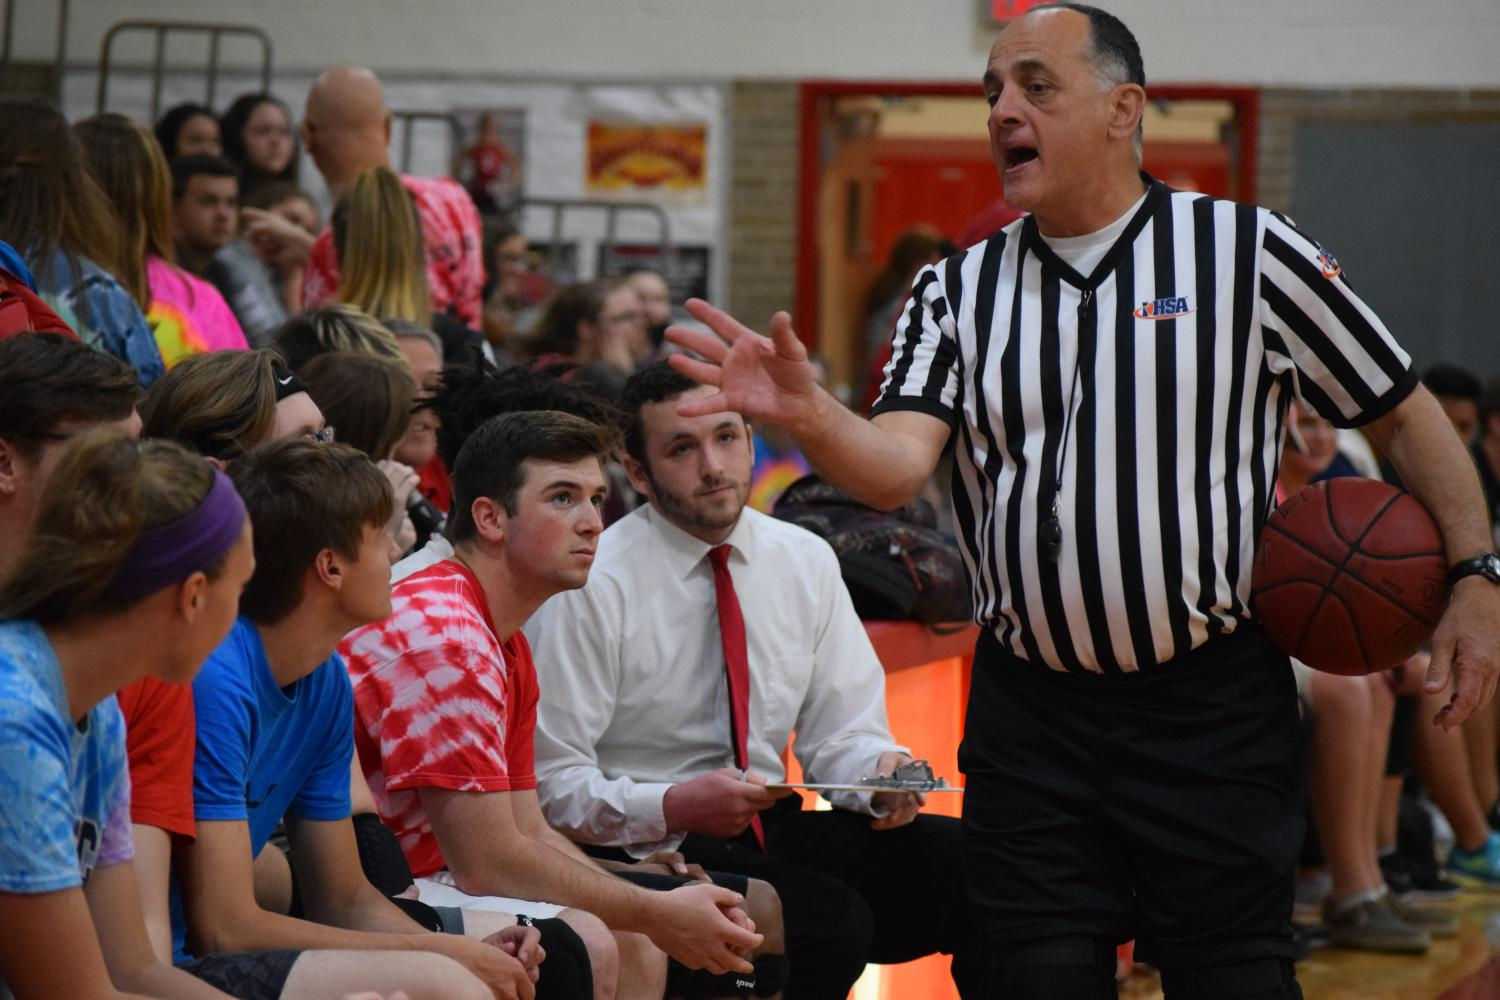 Referee Duquette discusses the rules with the student team